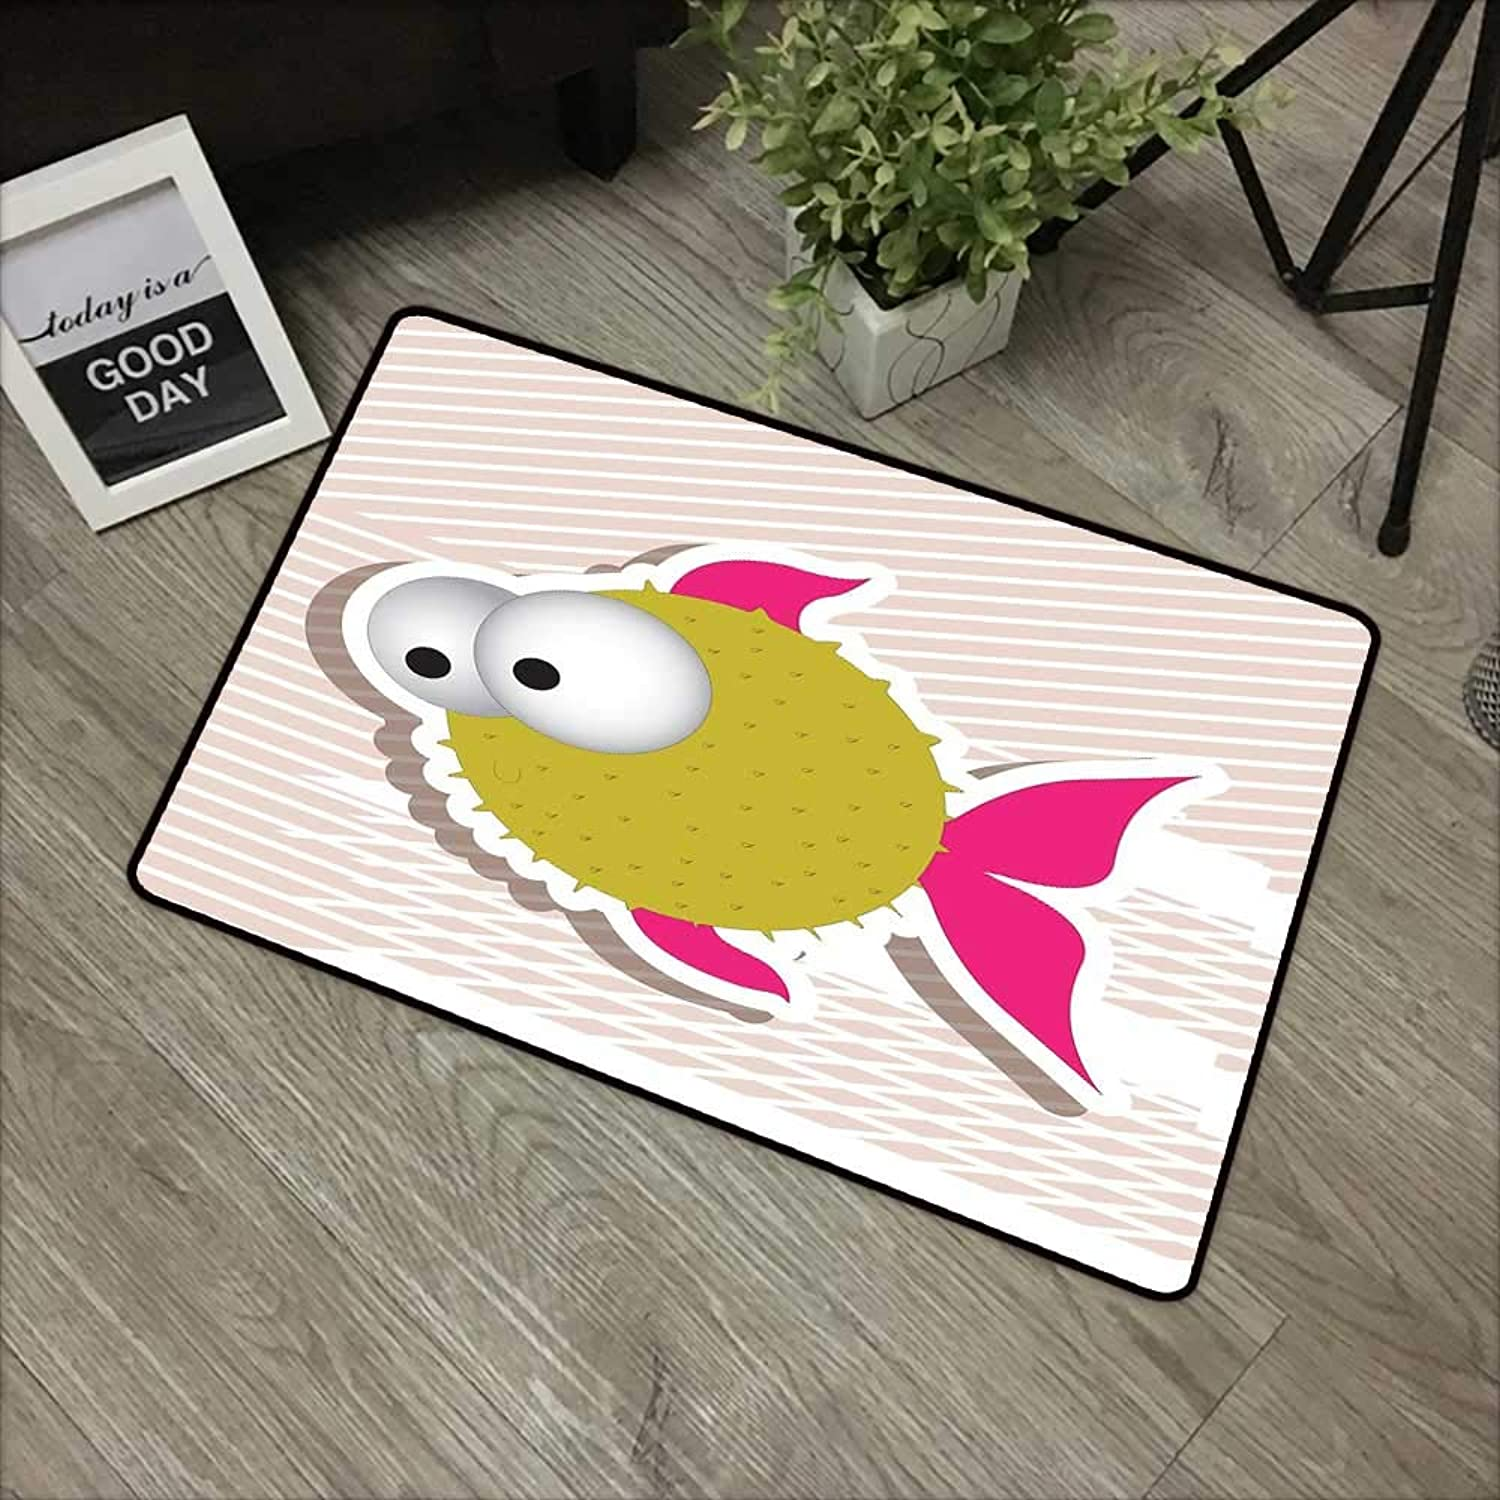 Bathroom anti-slip door mat W35 x L59 INCH Fish,Comical Illustration of a Bubble Fish Abstract Blowfish with Huge Eyes,Fuchsia gold Pearl White Easy to clean, no deformation, no fading Non-slip Door M